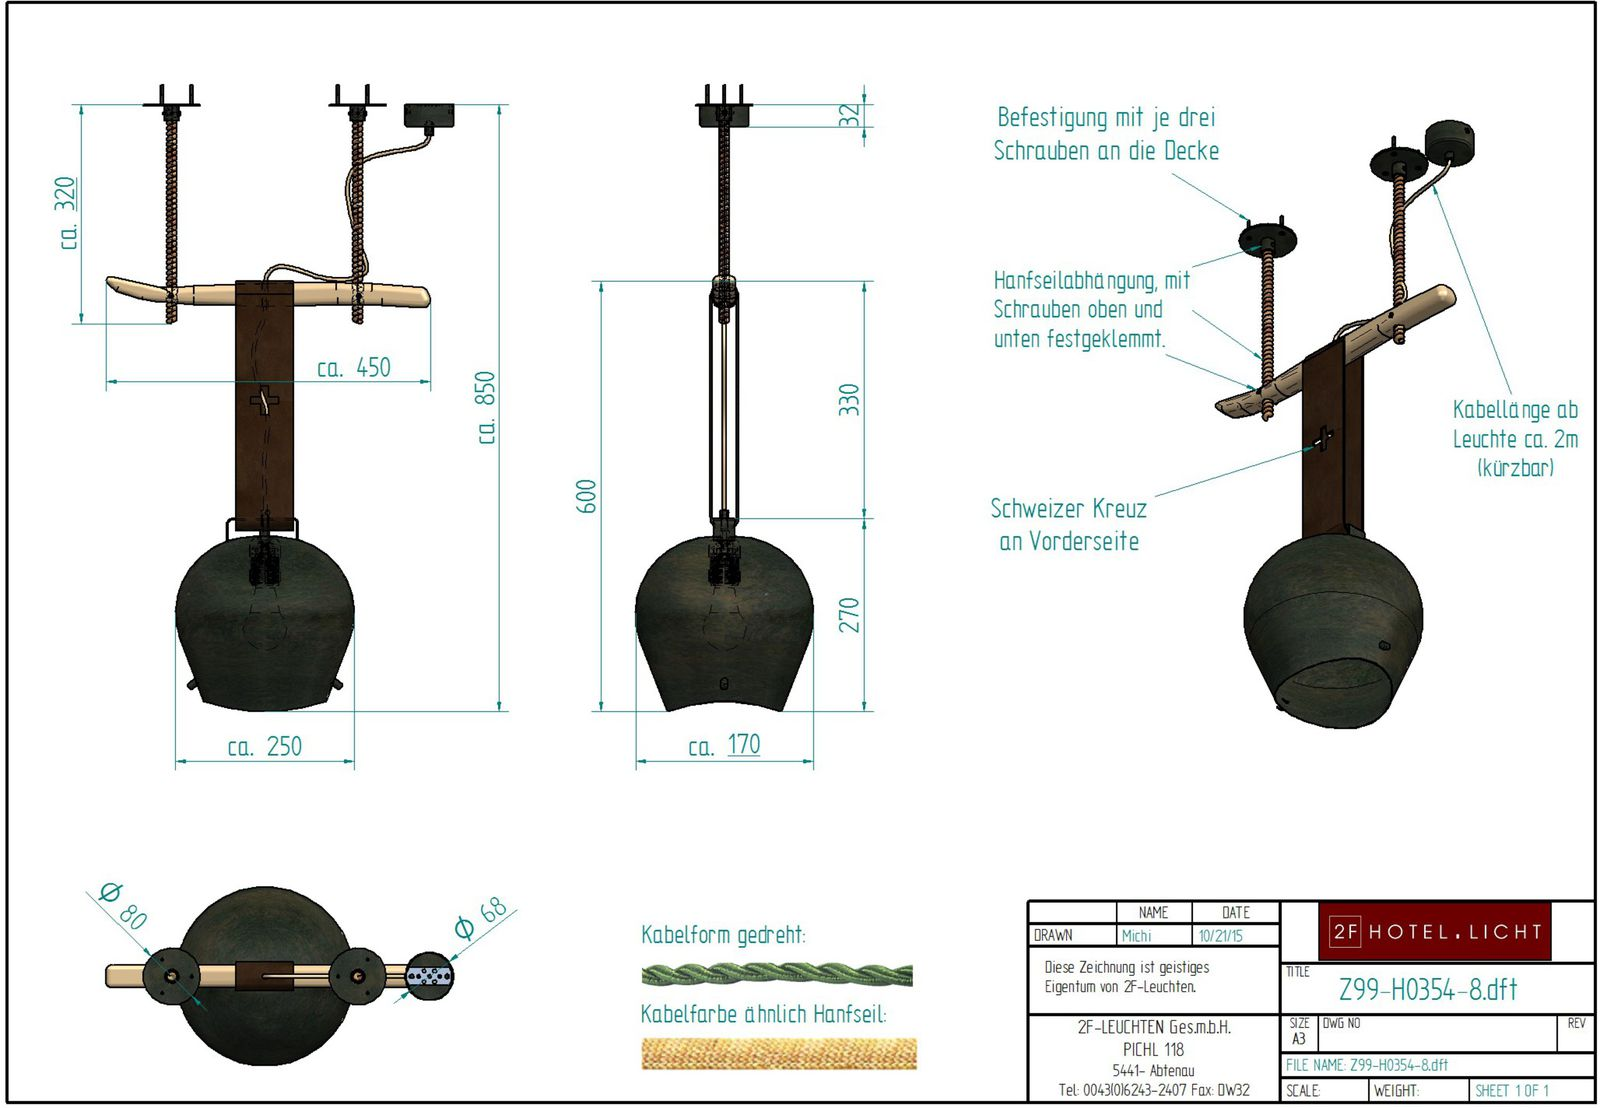 pendant with bell (250x170x270mm), L: ~450mm, wide: ~170mm, H: ~850mm, surface: Metal RO, techn. Data: 1xE27 42W, 230V, dimmable